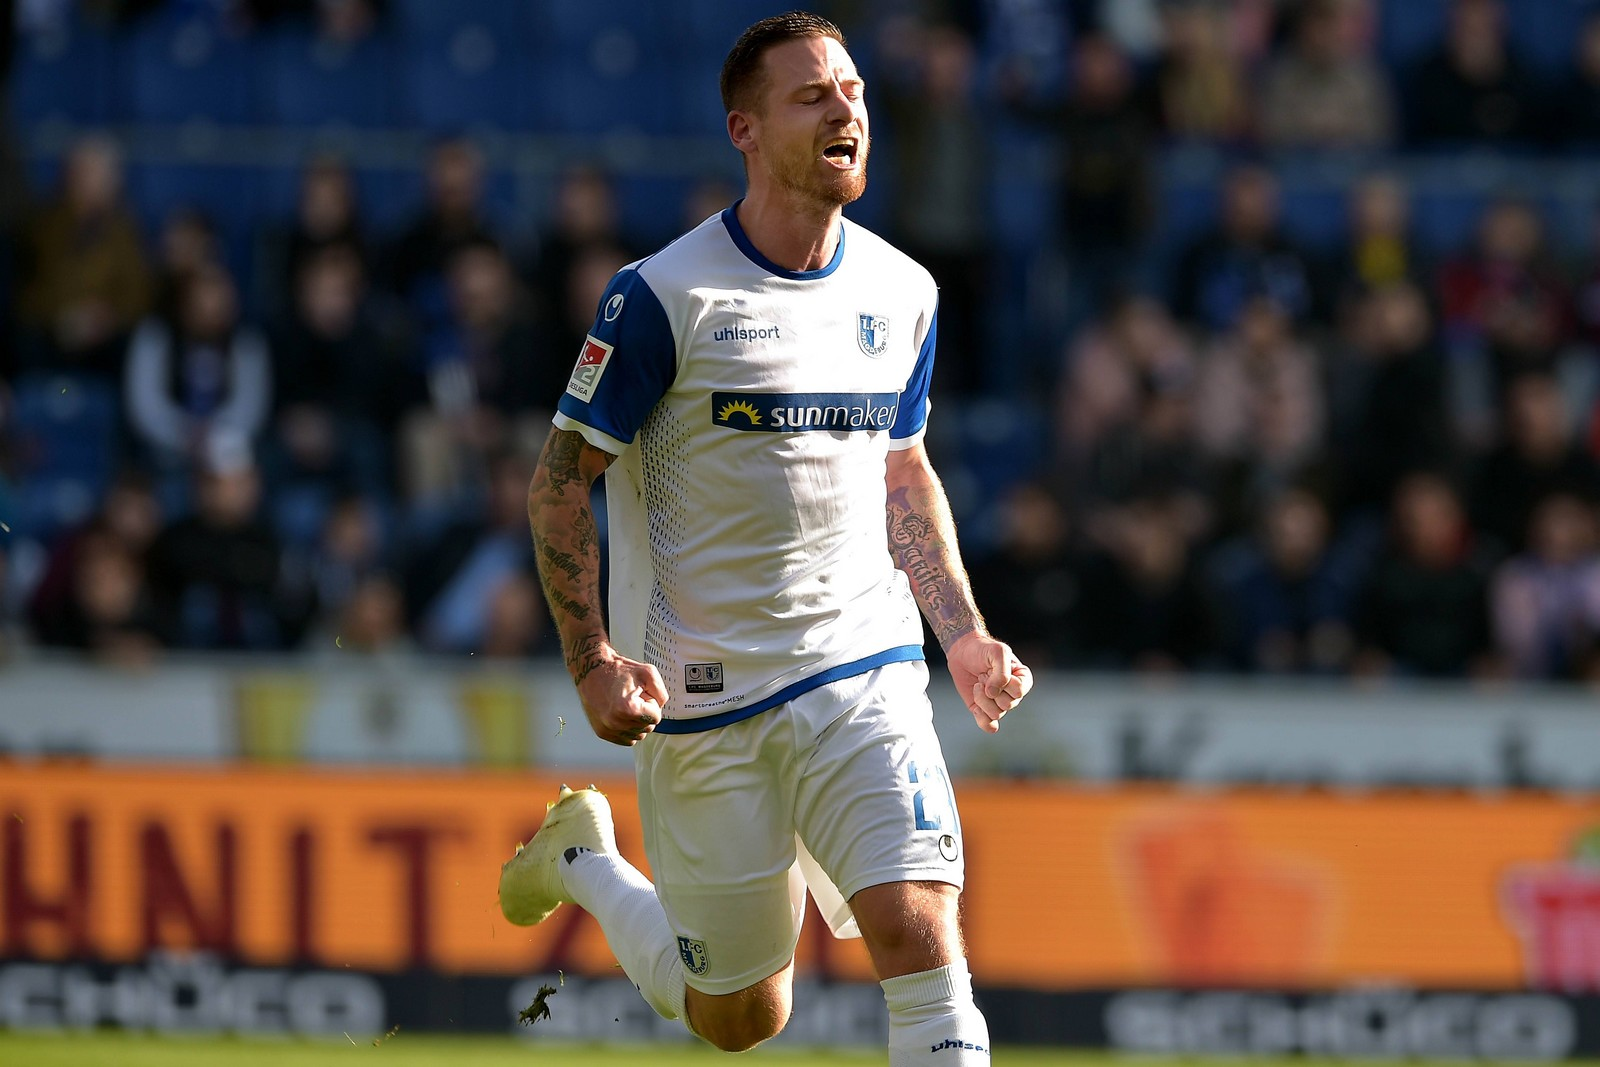 Timo Perthel vom 1. FC Magdeburg